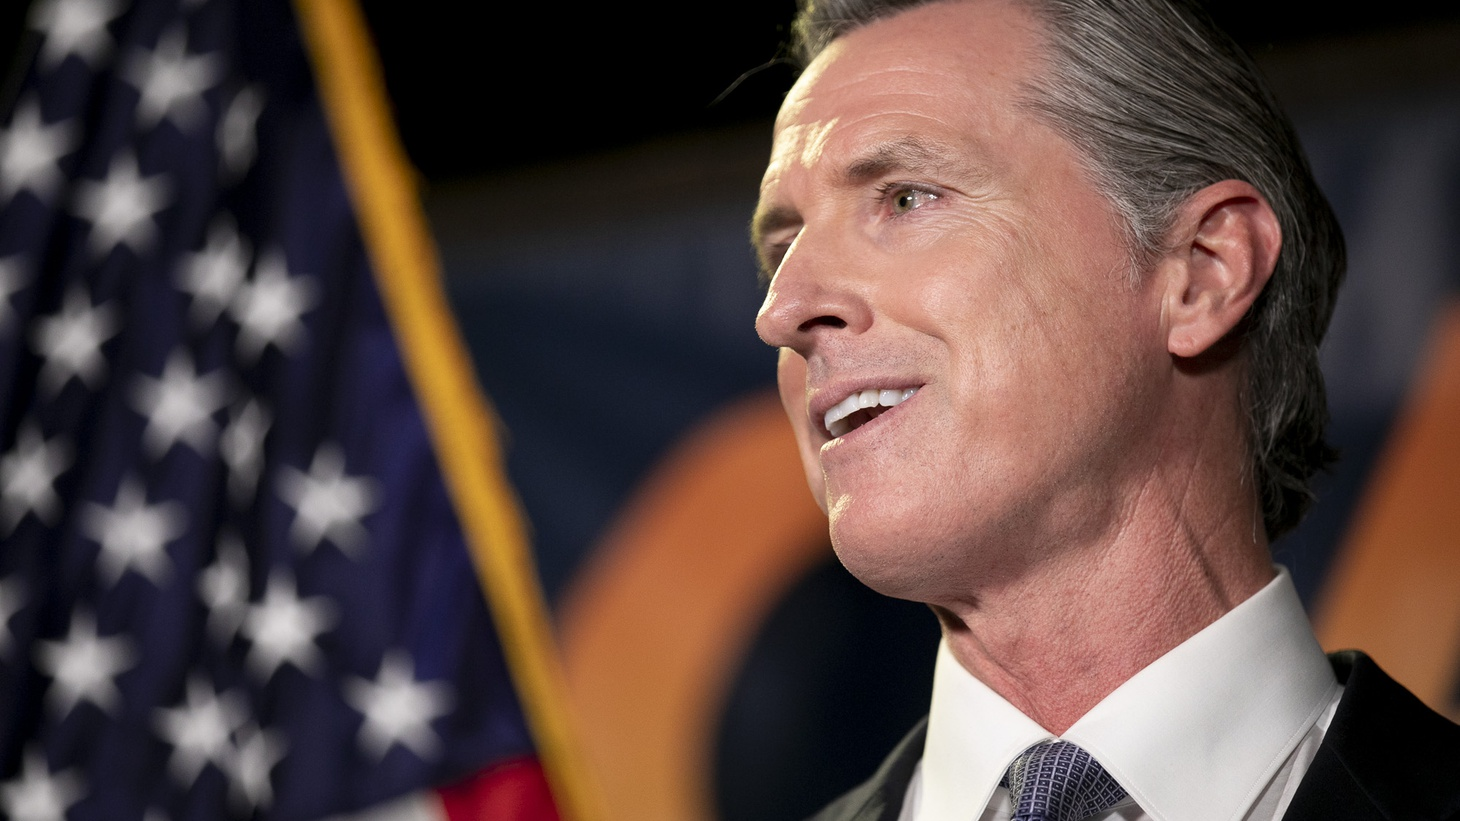 Gov. Gavin Newsom gives a speech following his projected victory in the recall election at the California Democratic Party headquarters in Sacramento on Sept. 14, 2021.